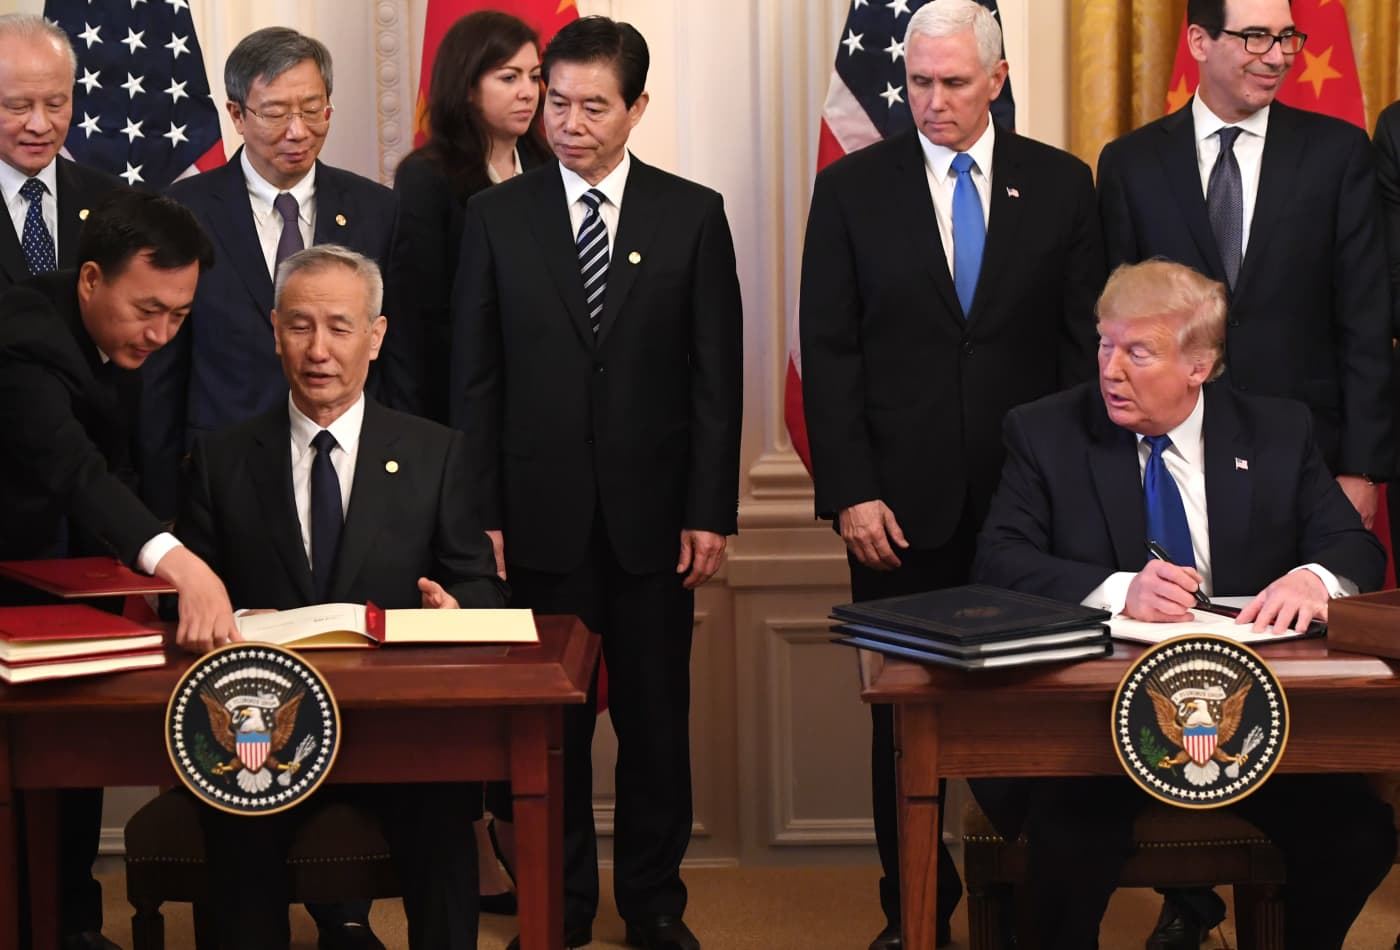 Trump signs 'phase one' trade deal with China in push to stop economic conflict